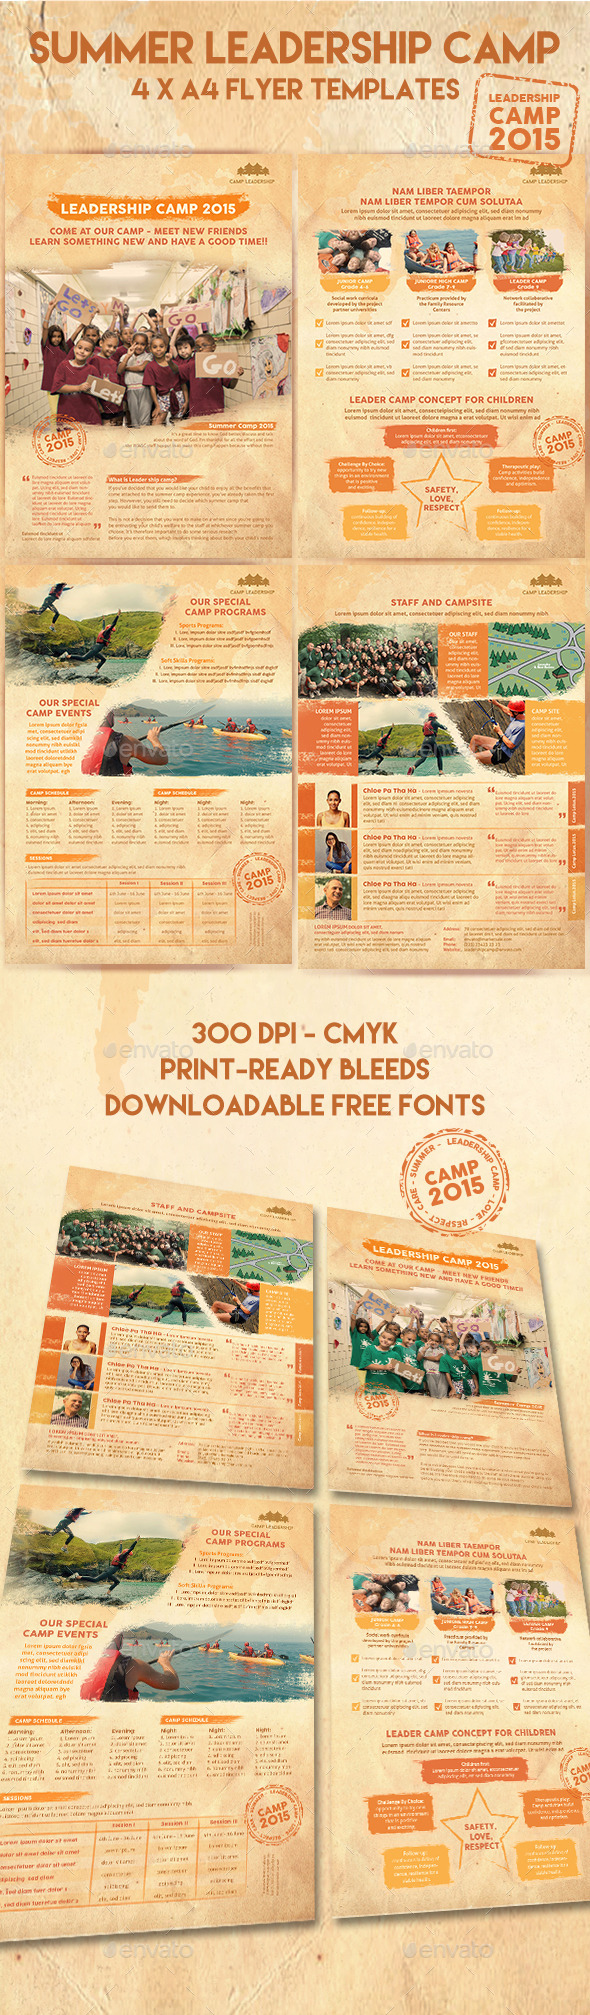 daycare flyer templates and samples girls summer camp flyer 4 templates activity brush camp camping elementary